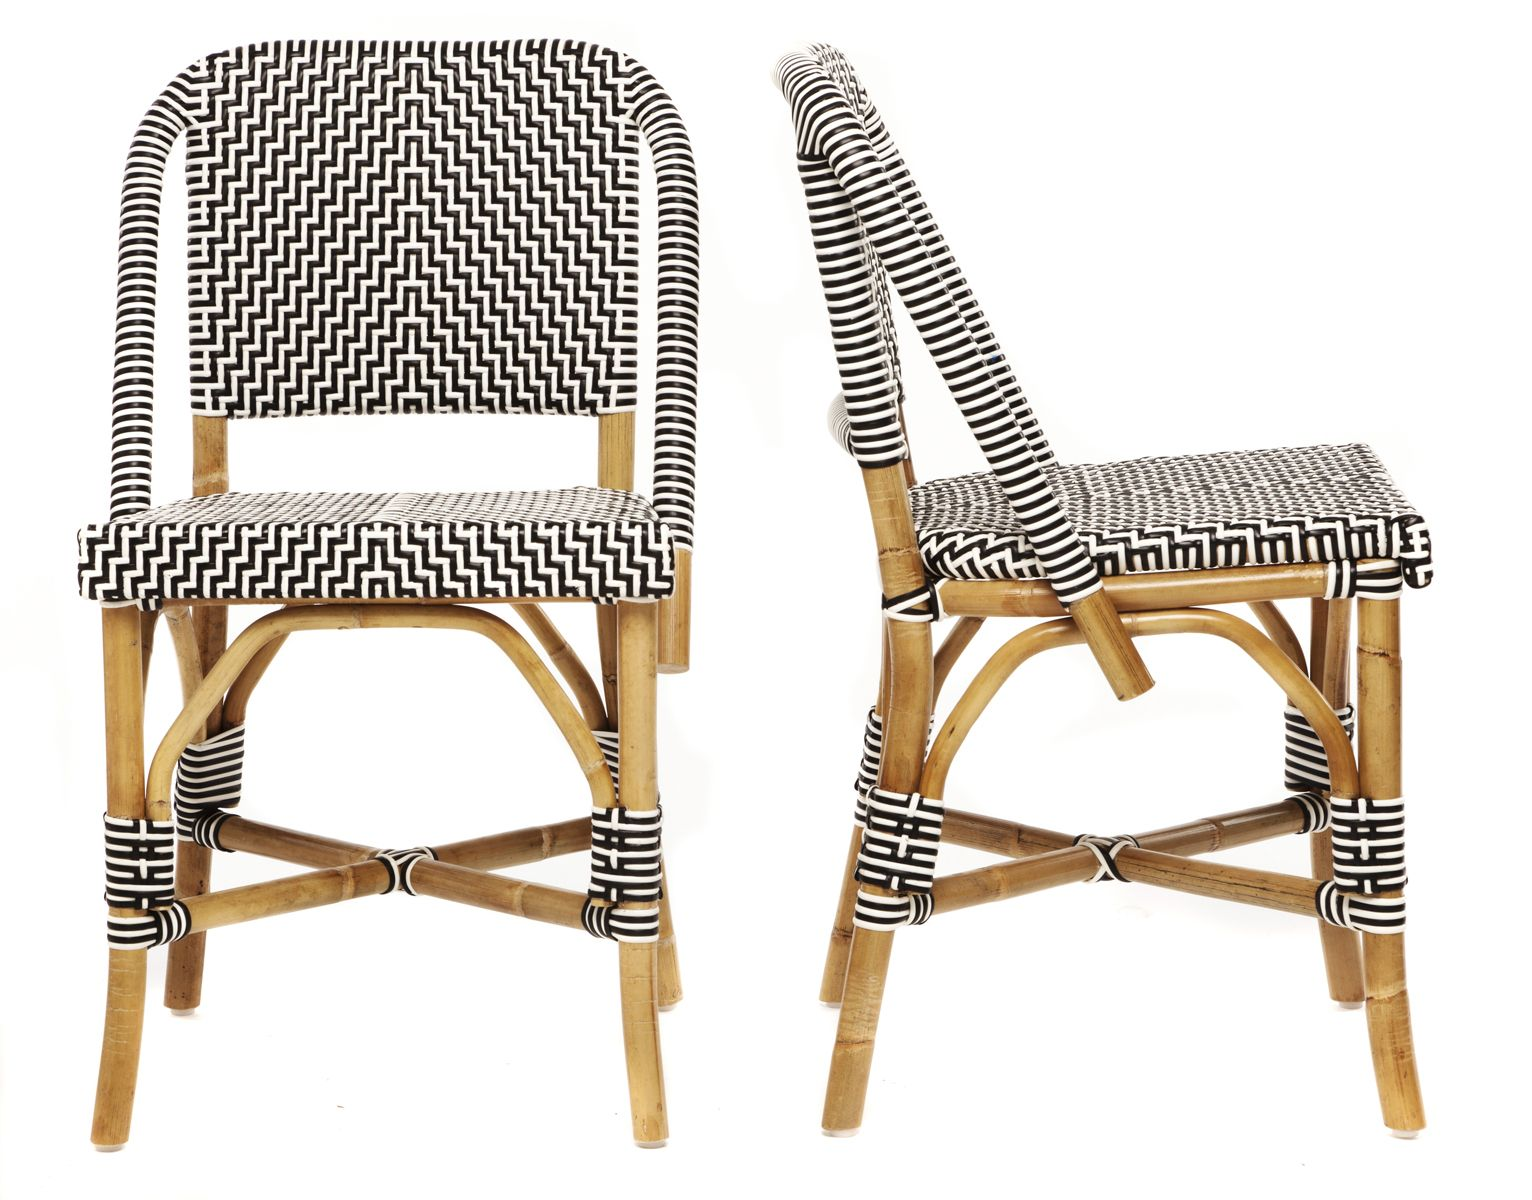 french rattan bistro chairs big lots high chair lafrique 32h black and white pattern